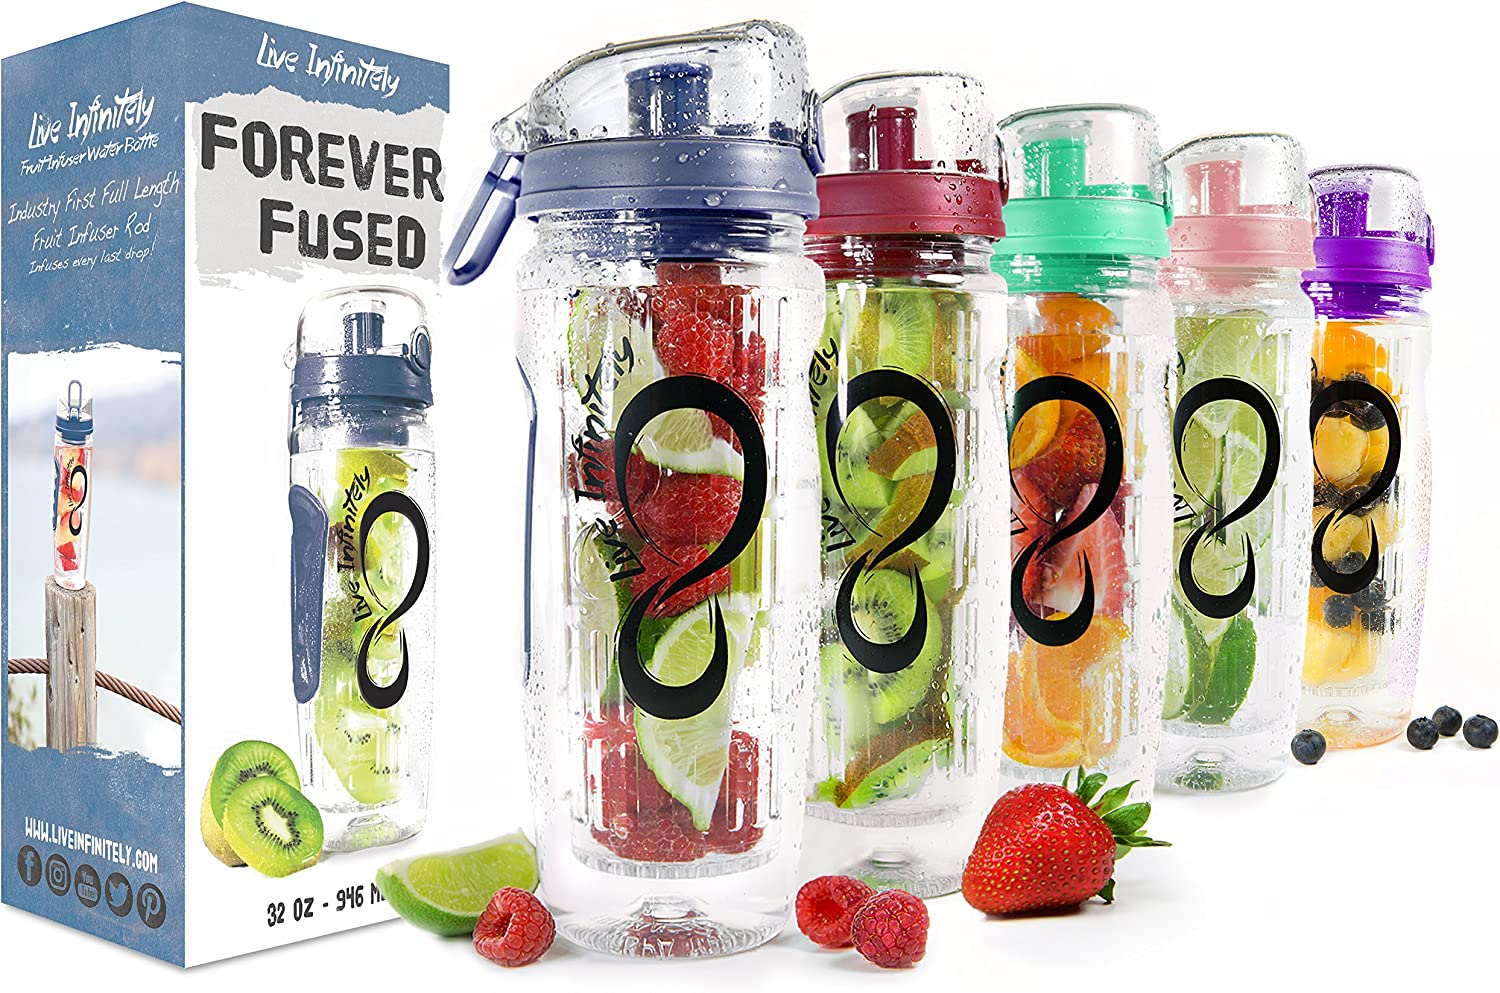 Live Infinitely 32 oz. Infuser Water Bottles - Featuring a Full Length Infusion Rod, Flip Top Lid, Dual Hand Grips & Recipe Ebook Gift (Navy Blue, 32 oz)